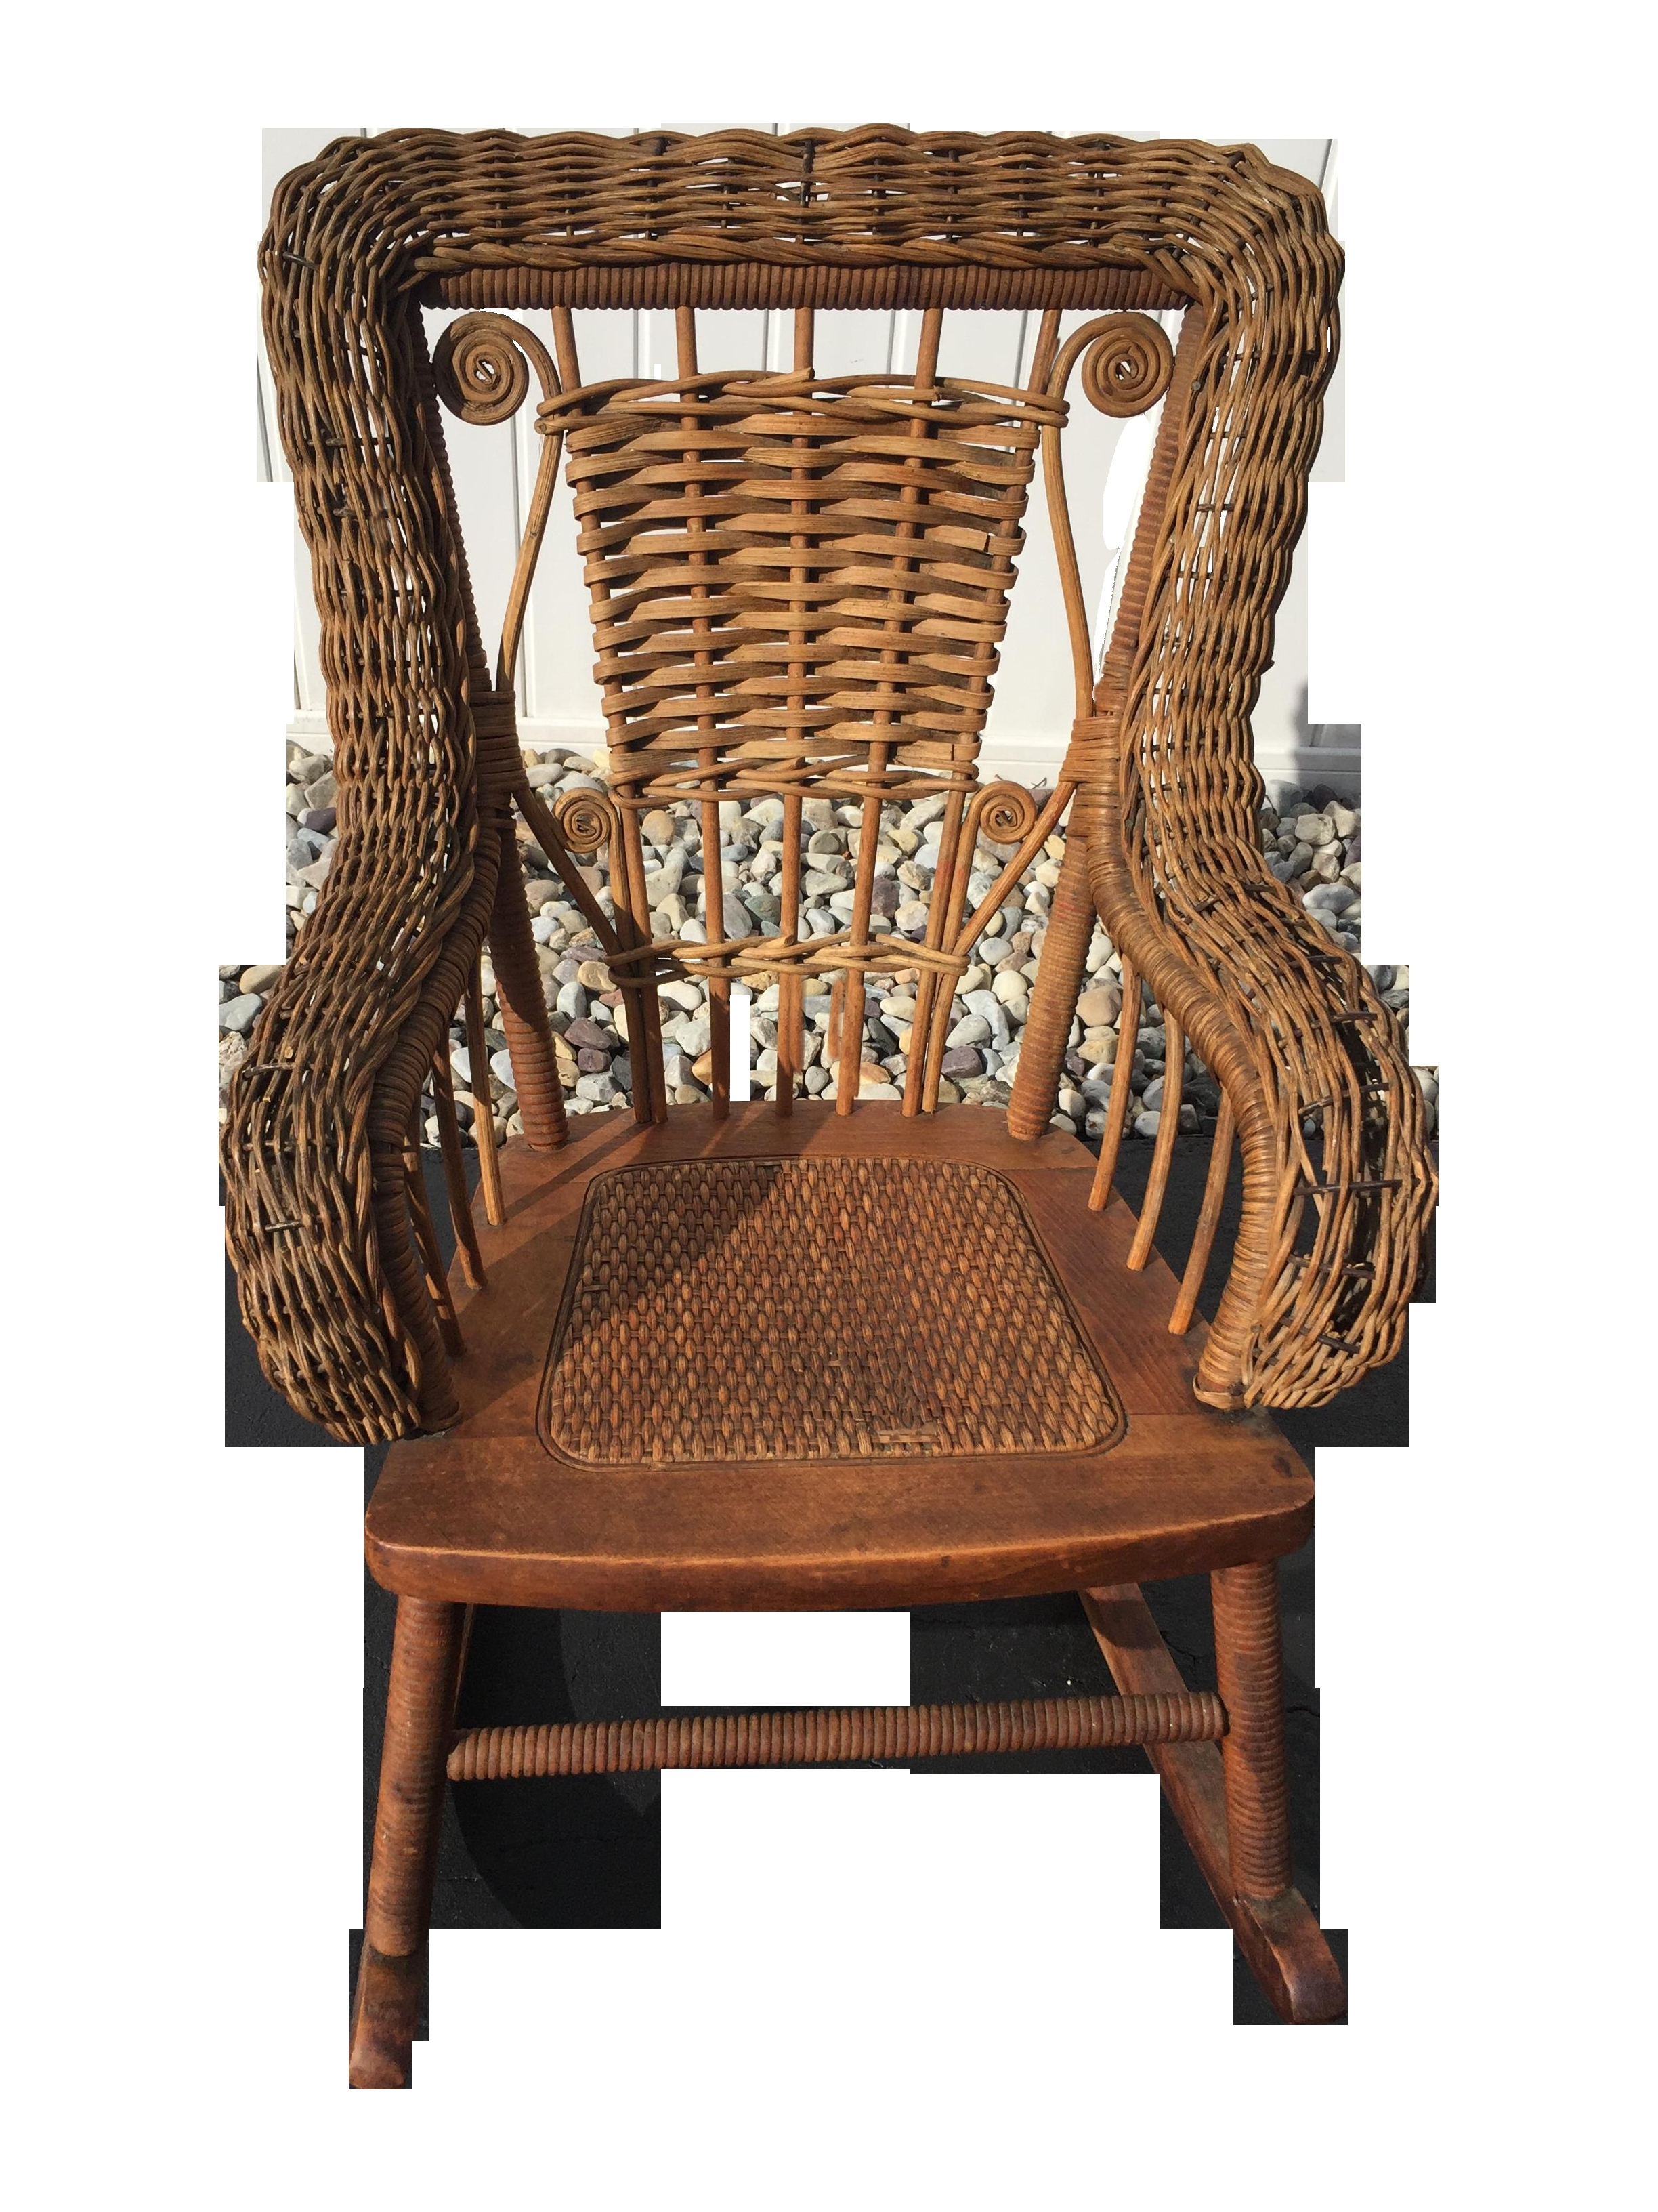 Antique Wicker Furniture Awesome Antique Wicker Rocking Chair Best With Regard To Trendy Antique Wicker Rocking Chairs (View 1 of 15)